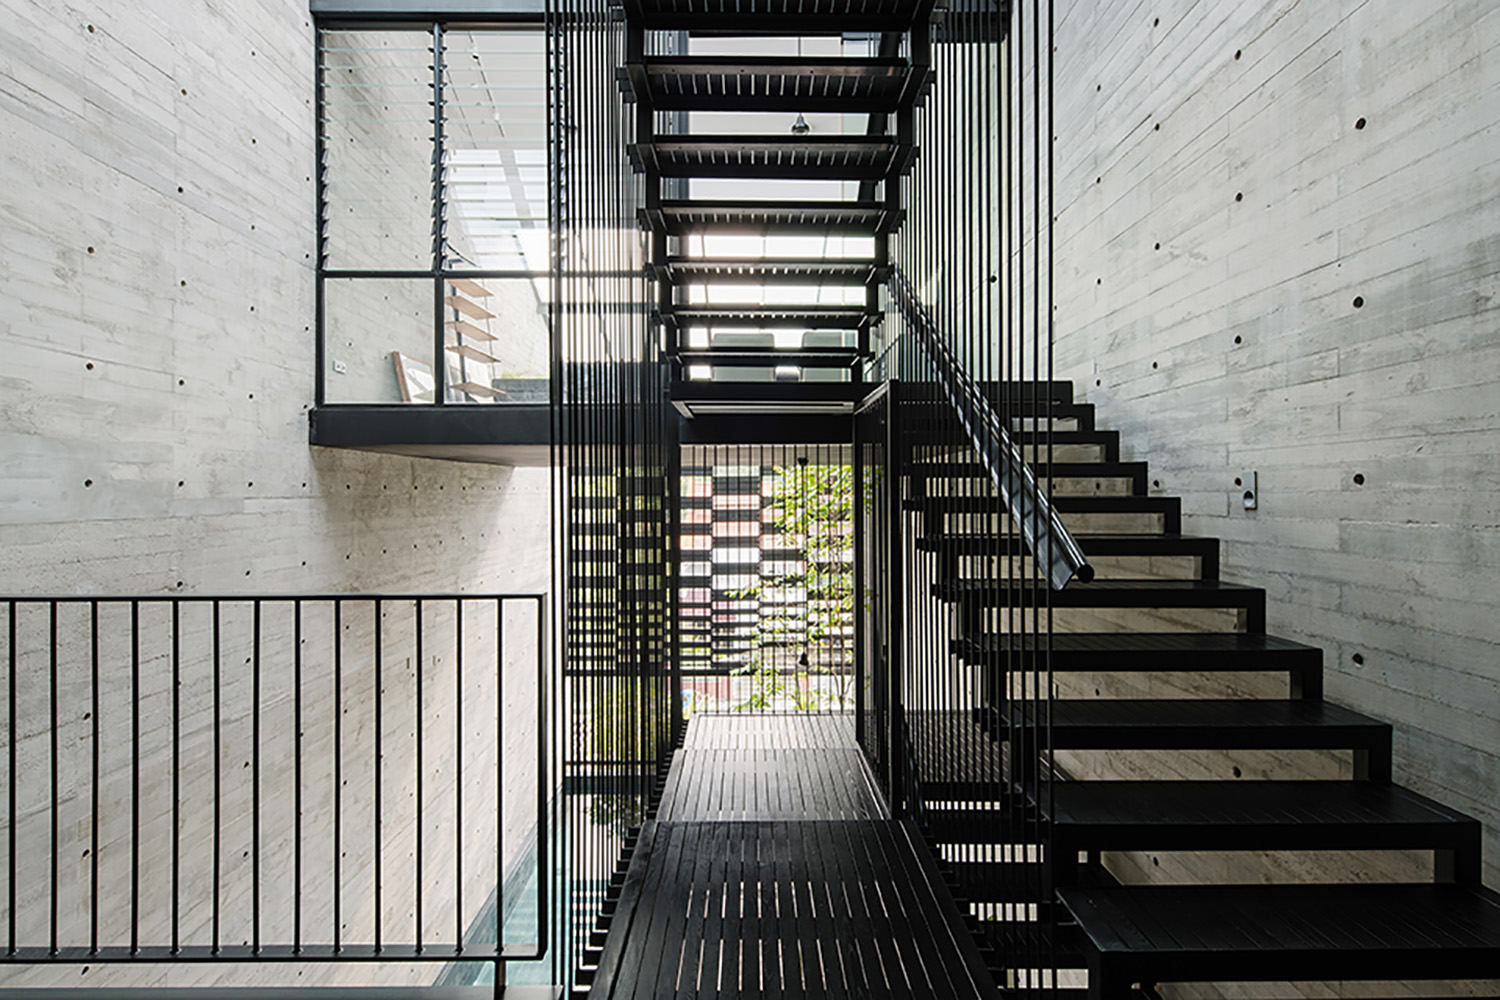 The openness of the suspended stairs allows for daylight and natural ventilation in the central atrium and the rooms surrounding it. Marc Tan